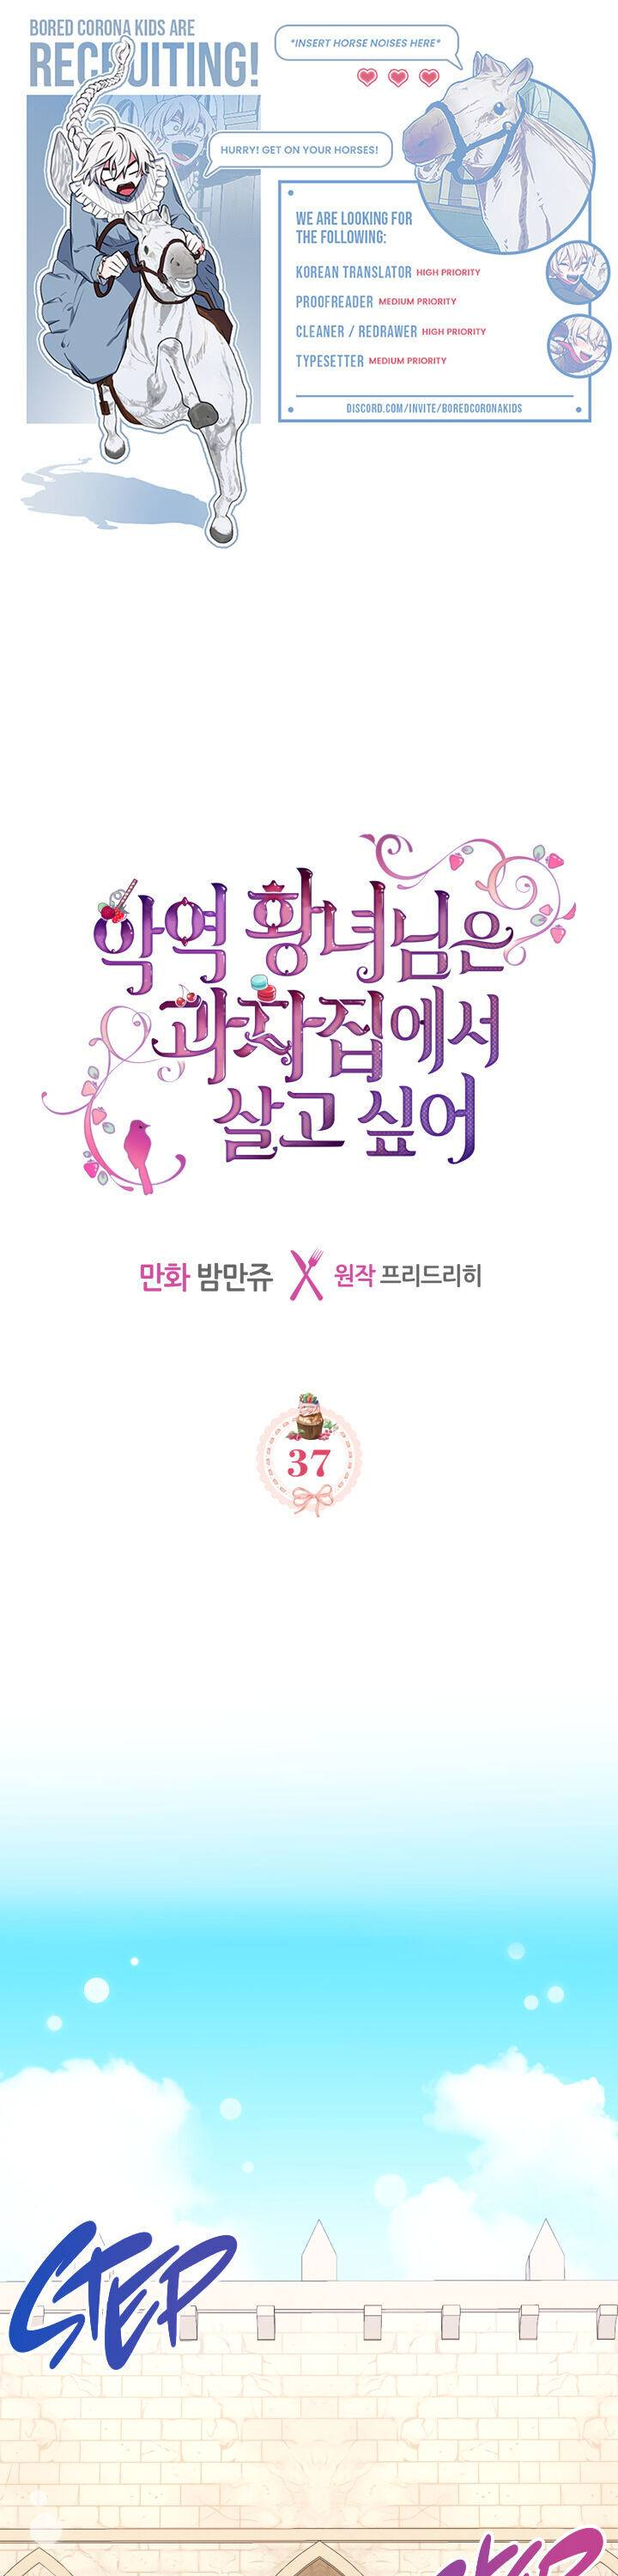 The Villainous Princess Wants To Live In A Gingerbread House - chapter 37 - #1